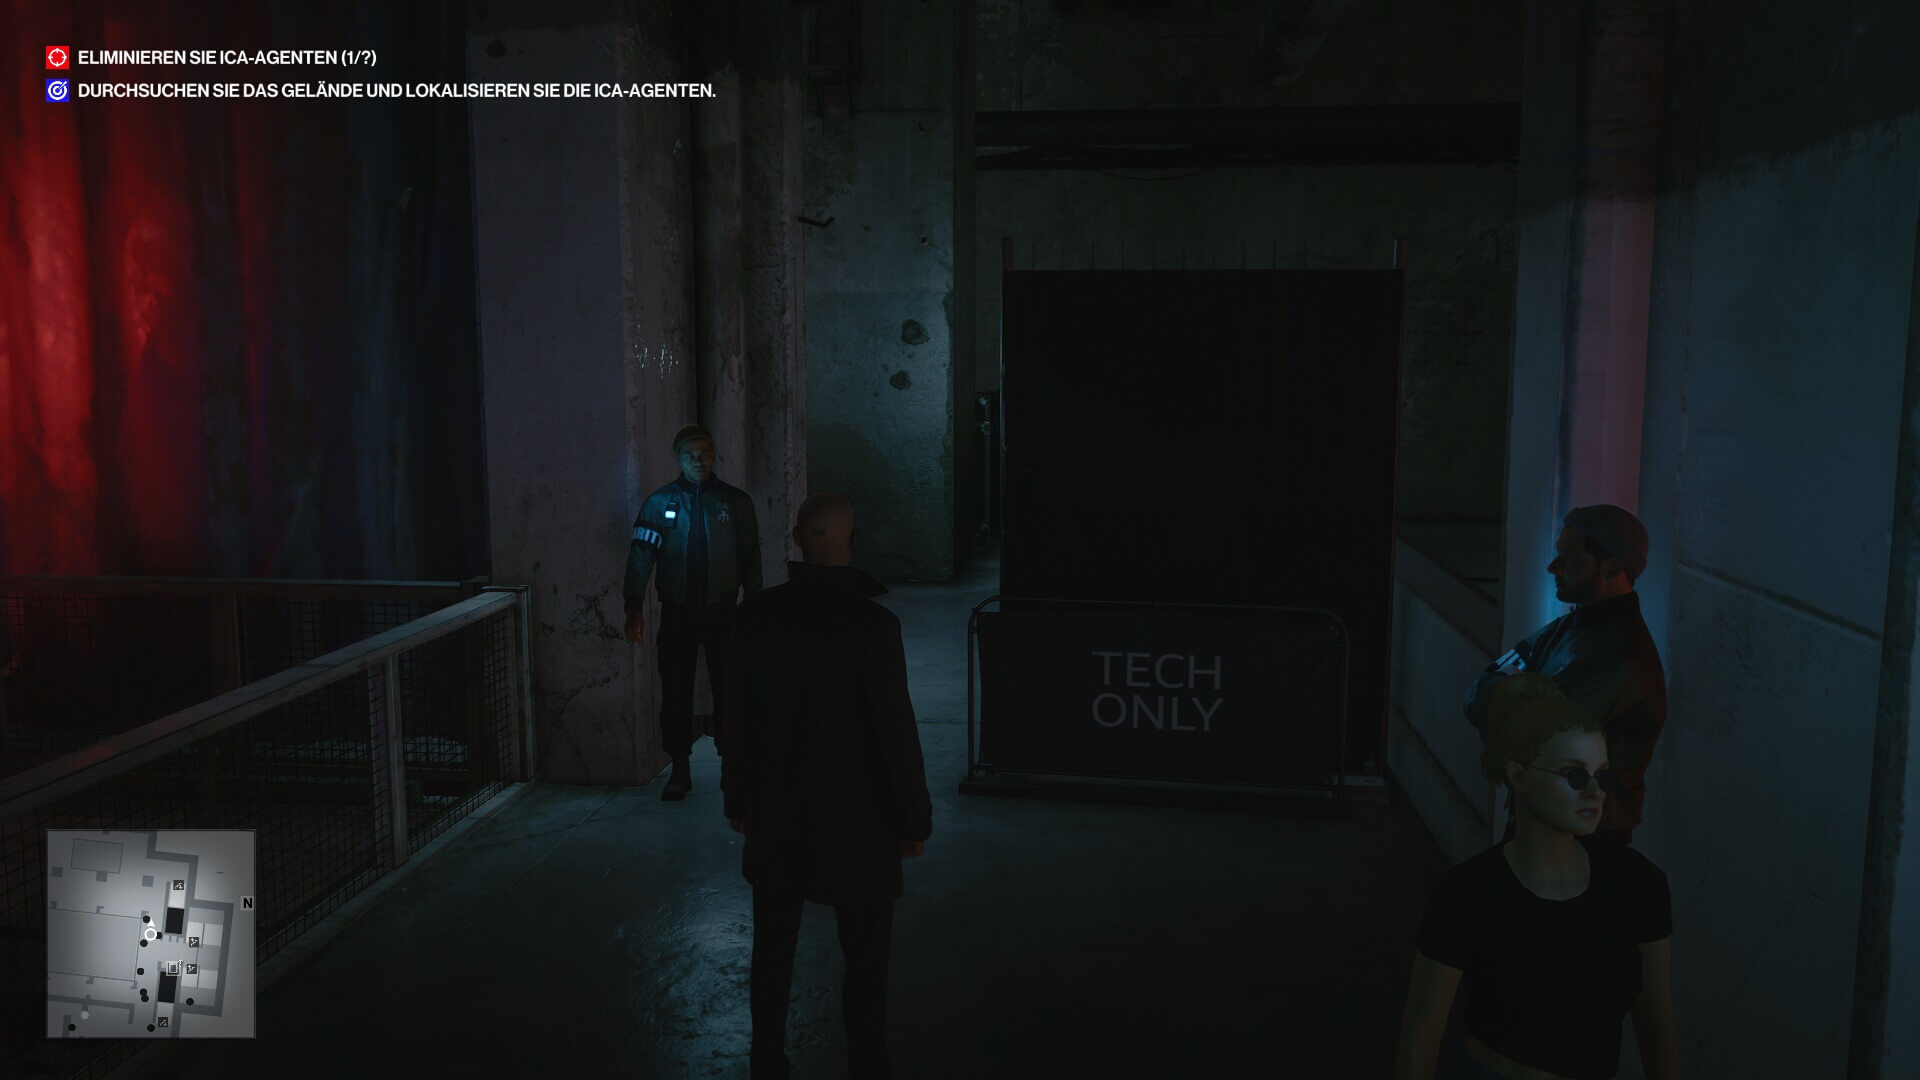 Hitman 3 Tech only